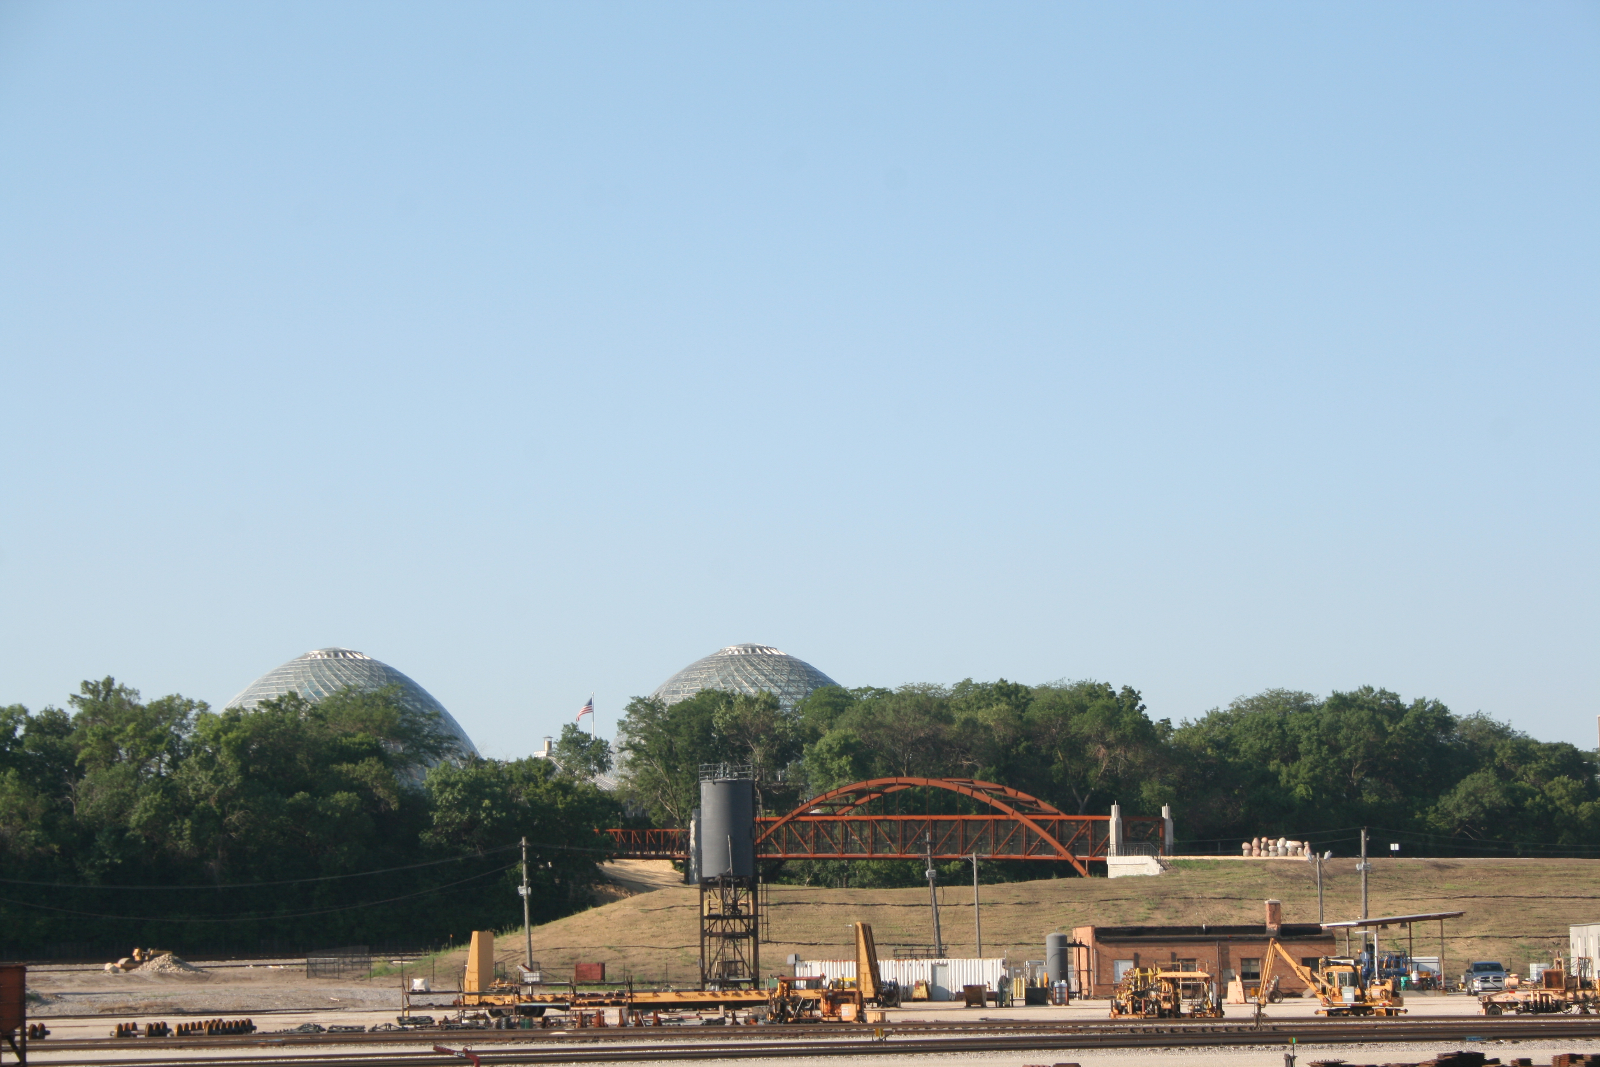 A view of one of the new bridges at Three Bridges Park, with the Domes in the background.